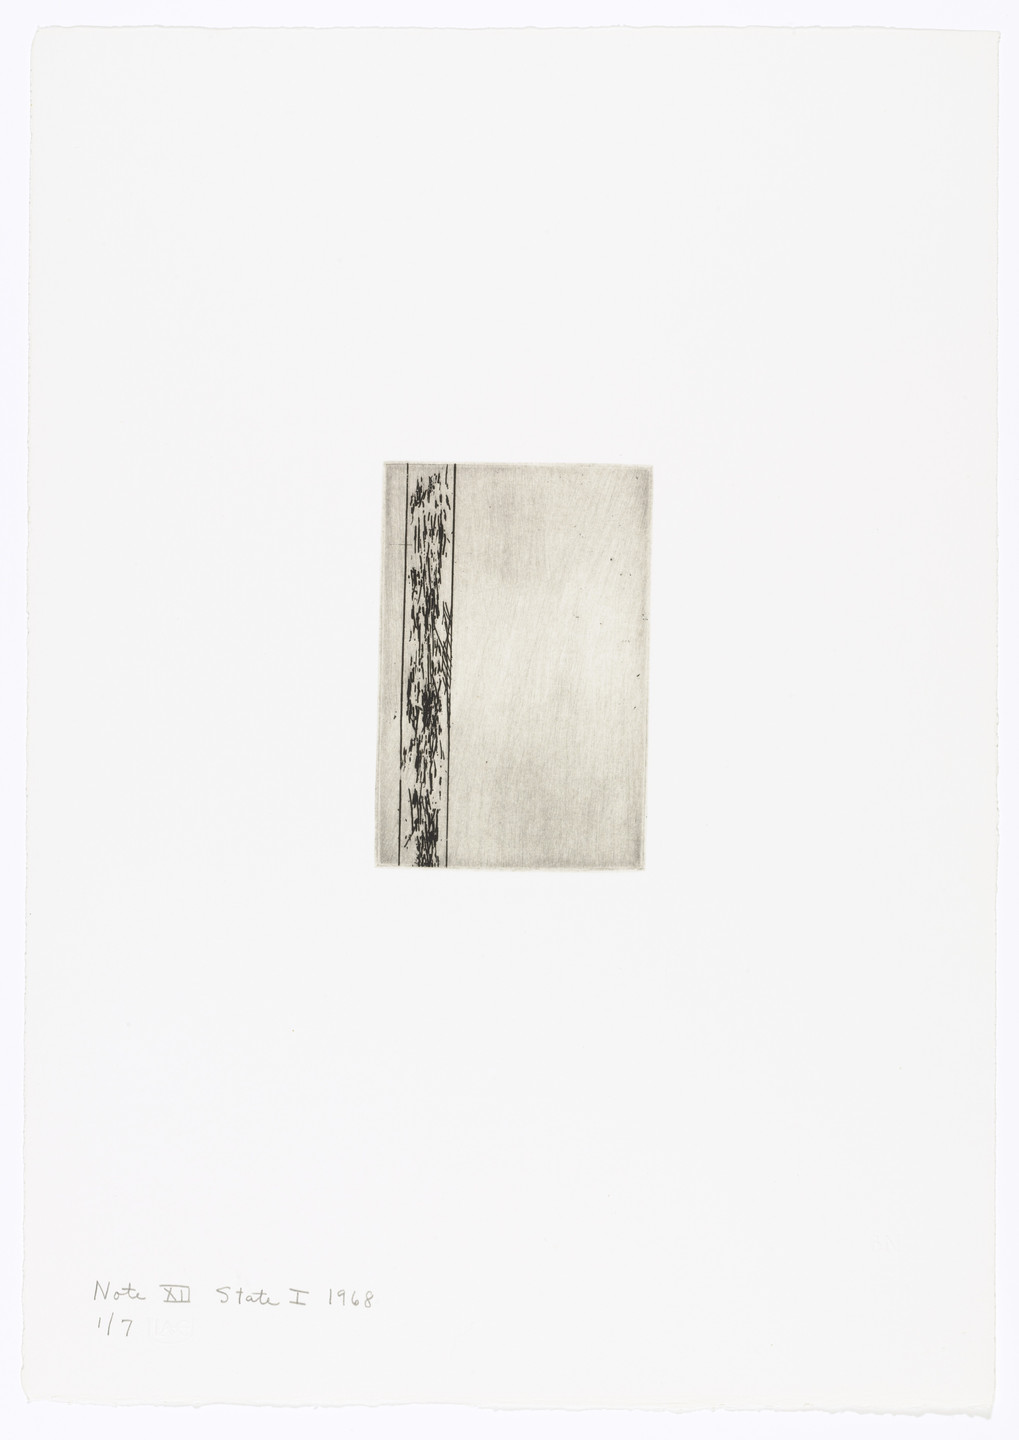 Barnett Newman. Note XII (State I) from Notes. 1968